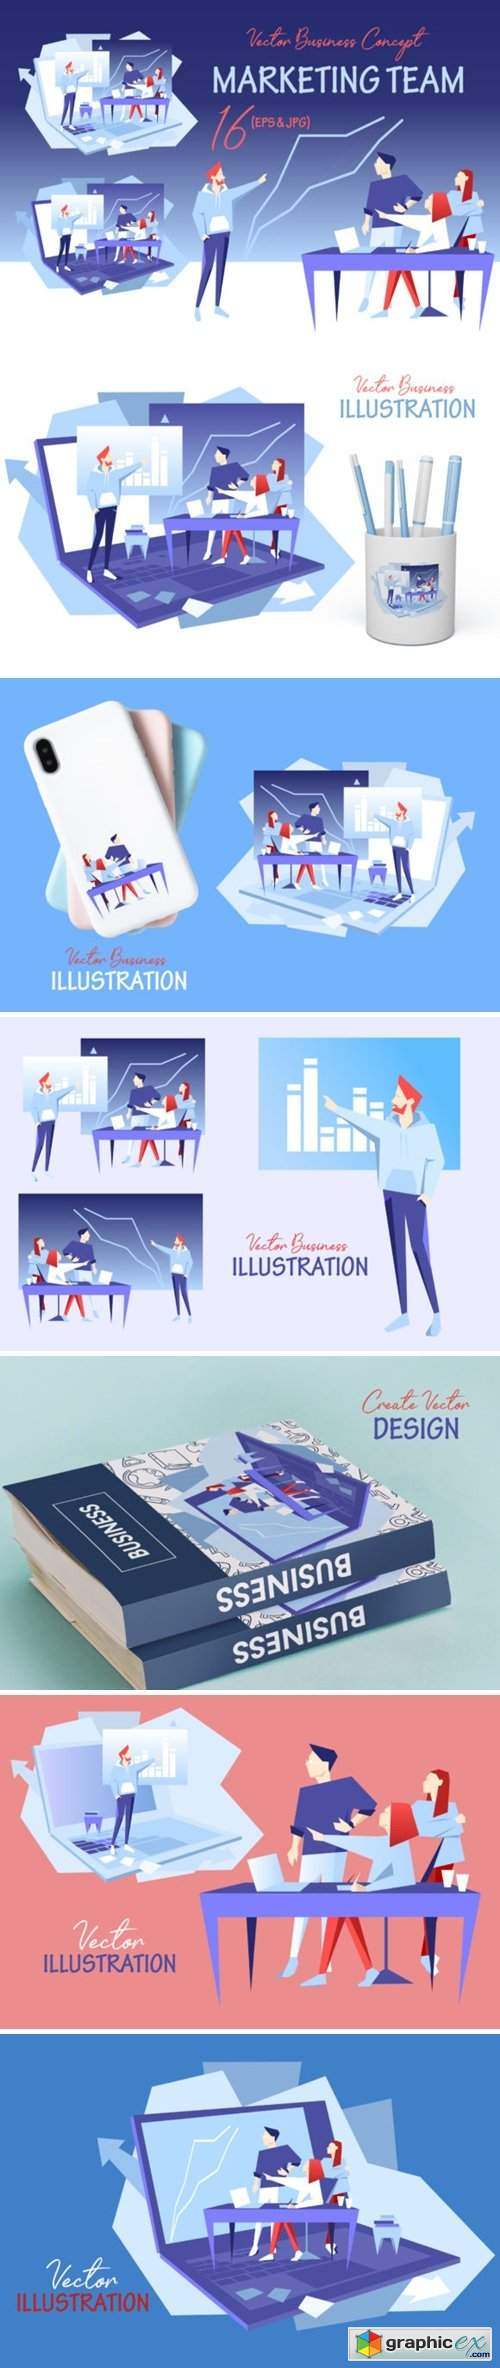 Marketing Team Vector Design Set